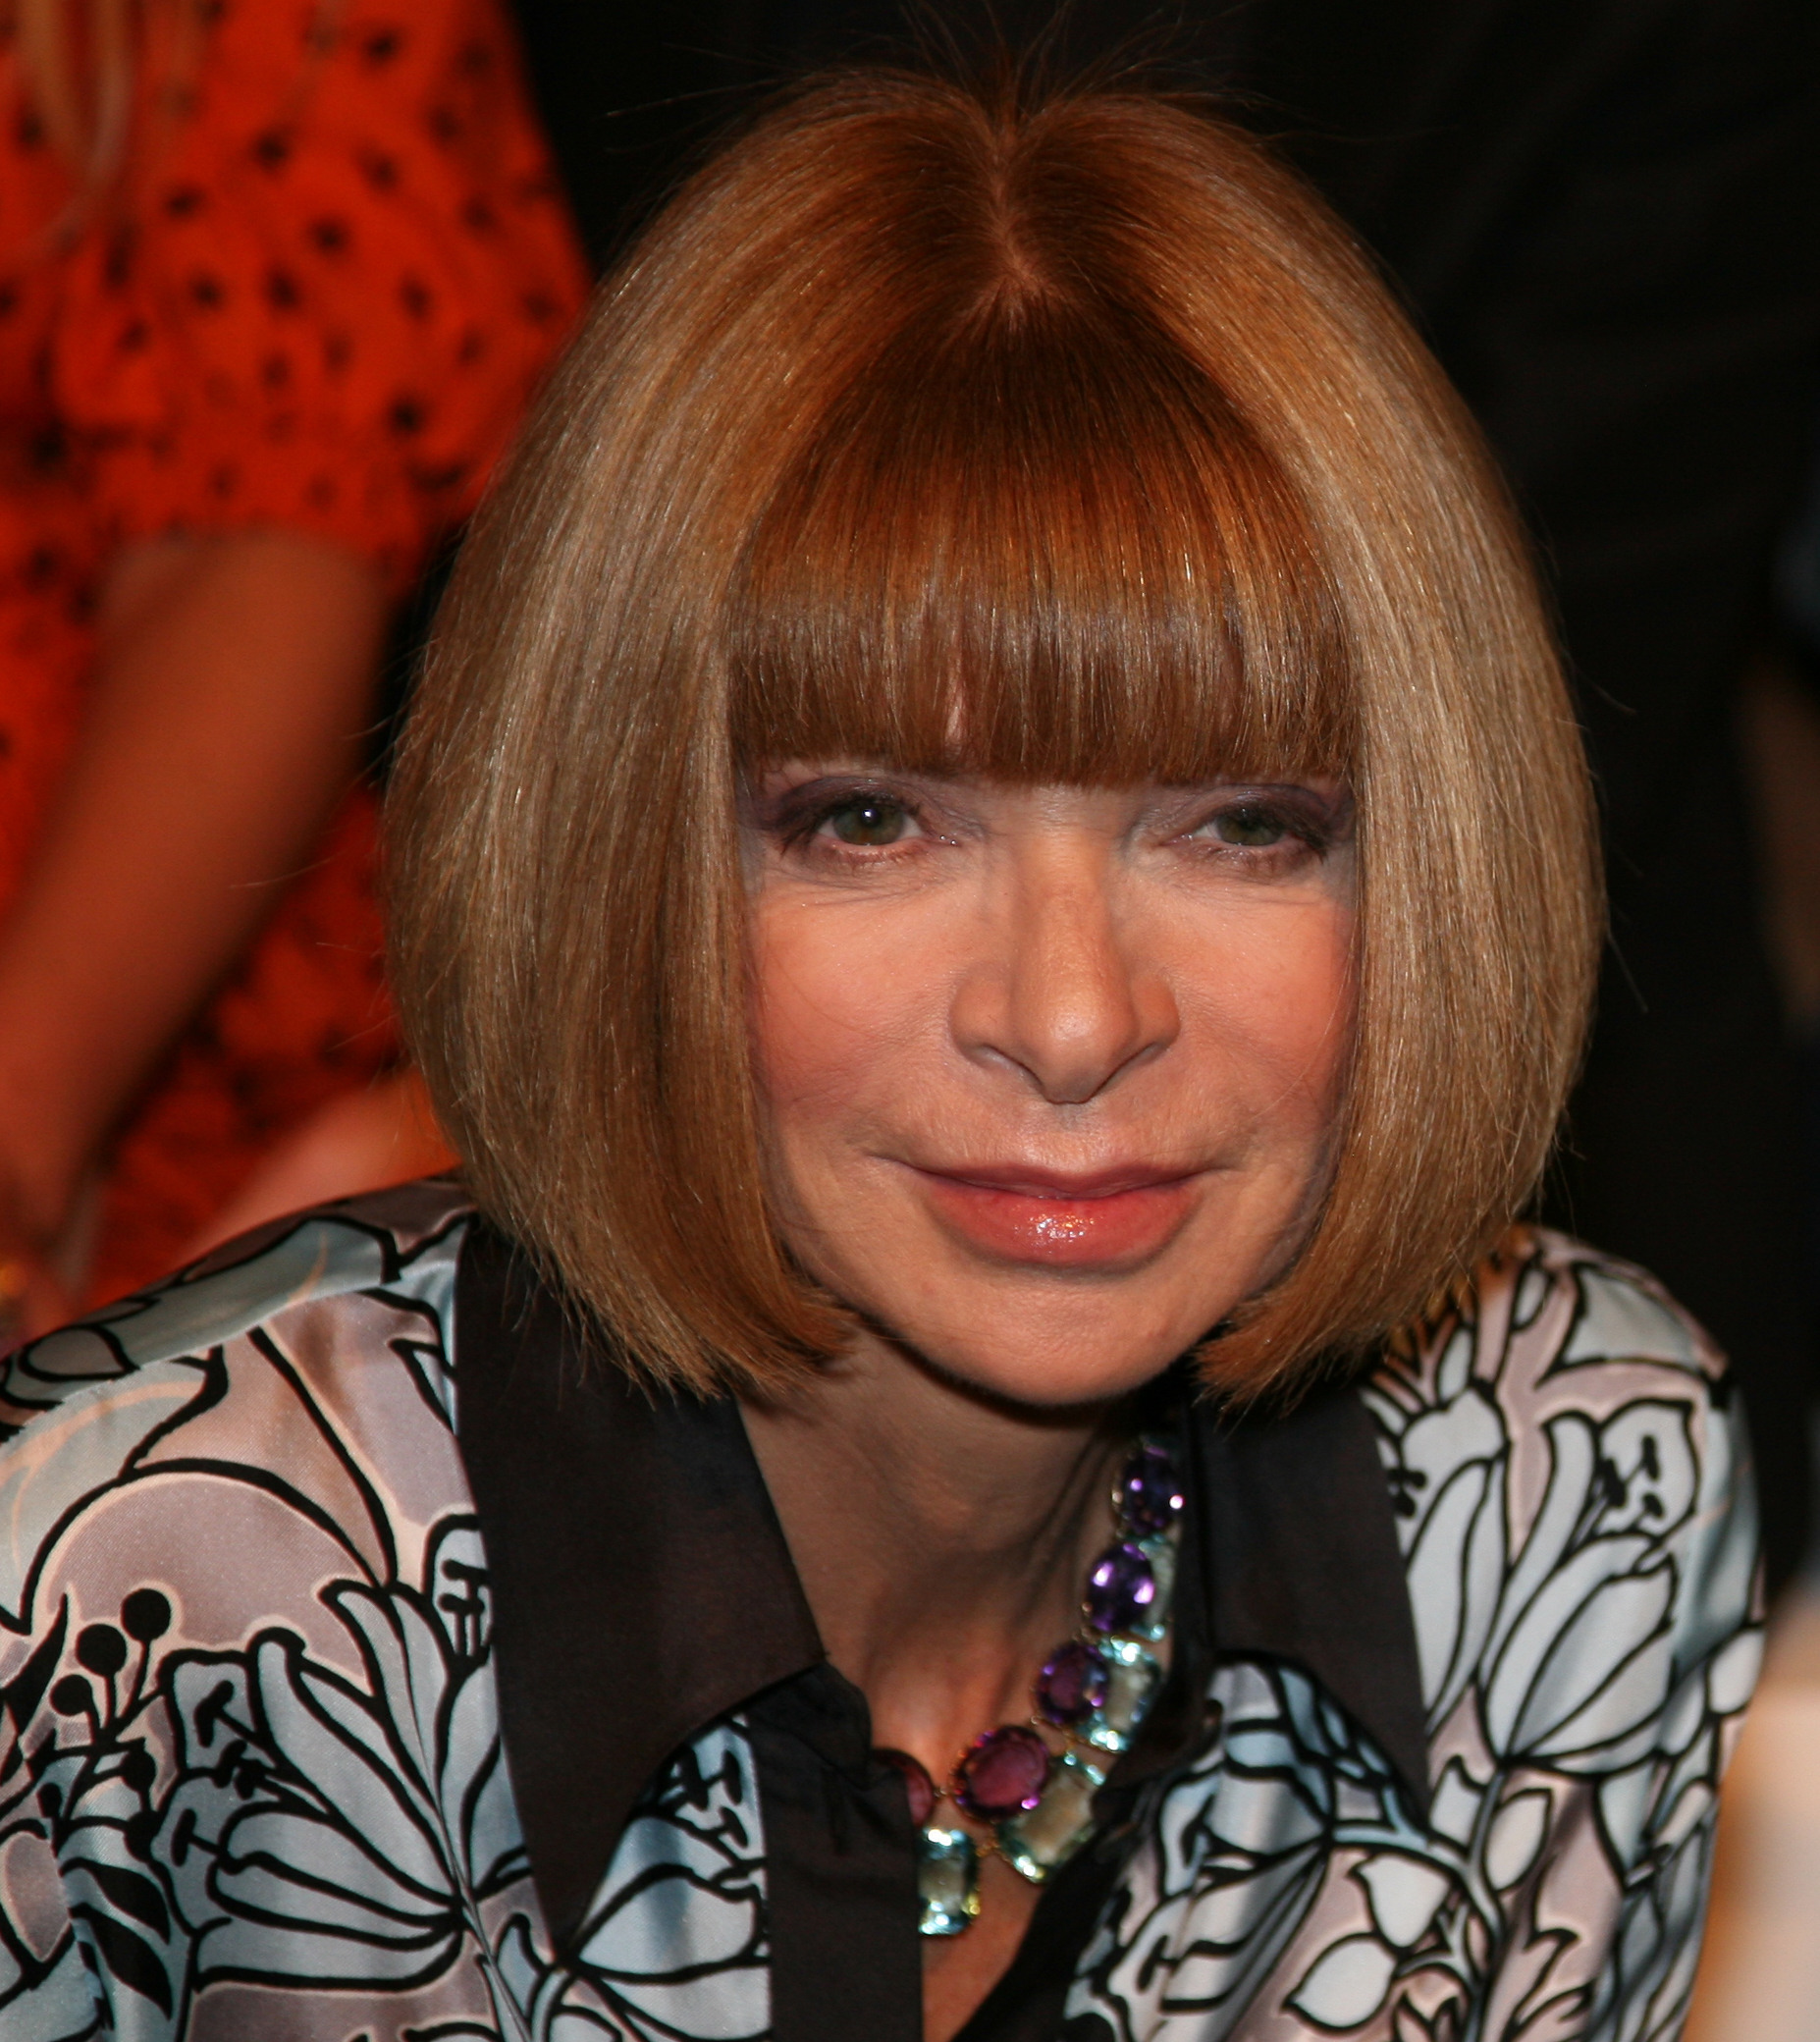 Anna Wintour at the Twenty8Twelve fashion show in London, September 22, 2009  Image credit: Anna Wintour & Alexa Chung